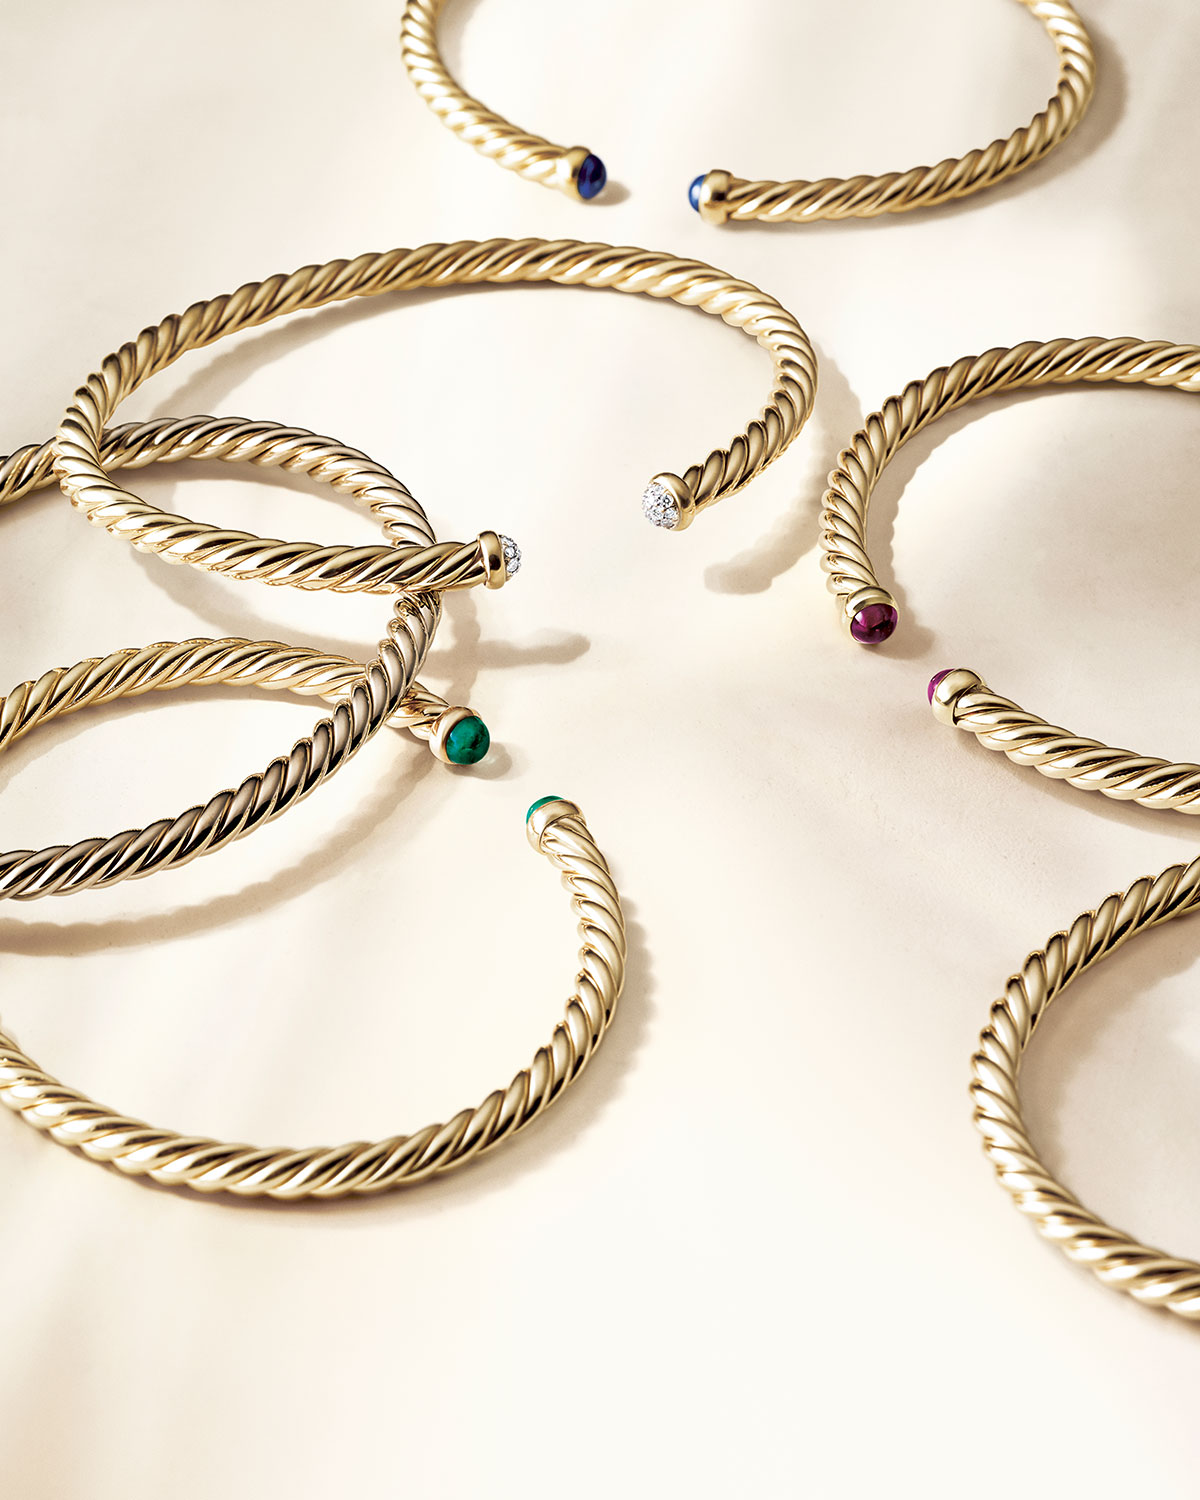 David Yurman Holiday Gifts